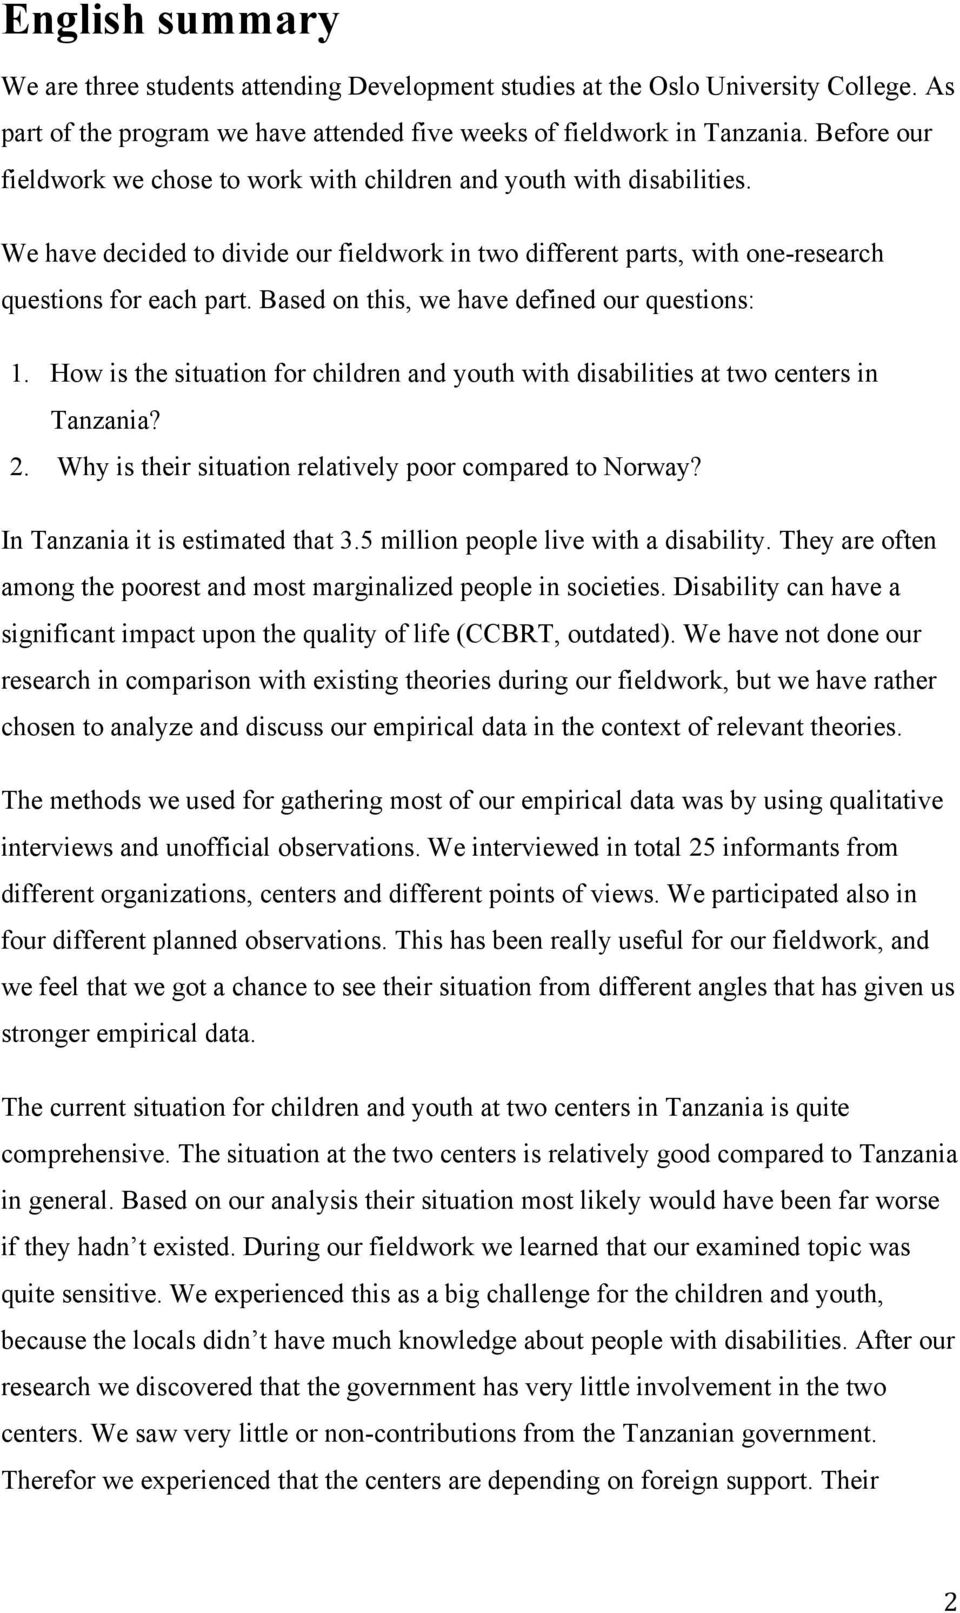 Based on this, we have defined our questions: 1. How is the situation for children and youth with disabilities at two centers in Tanzania? 2. Why is their situation relatively poor compared to Norway?